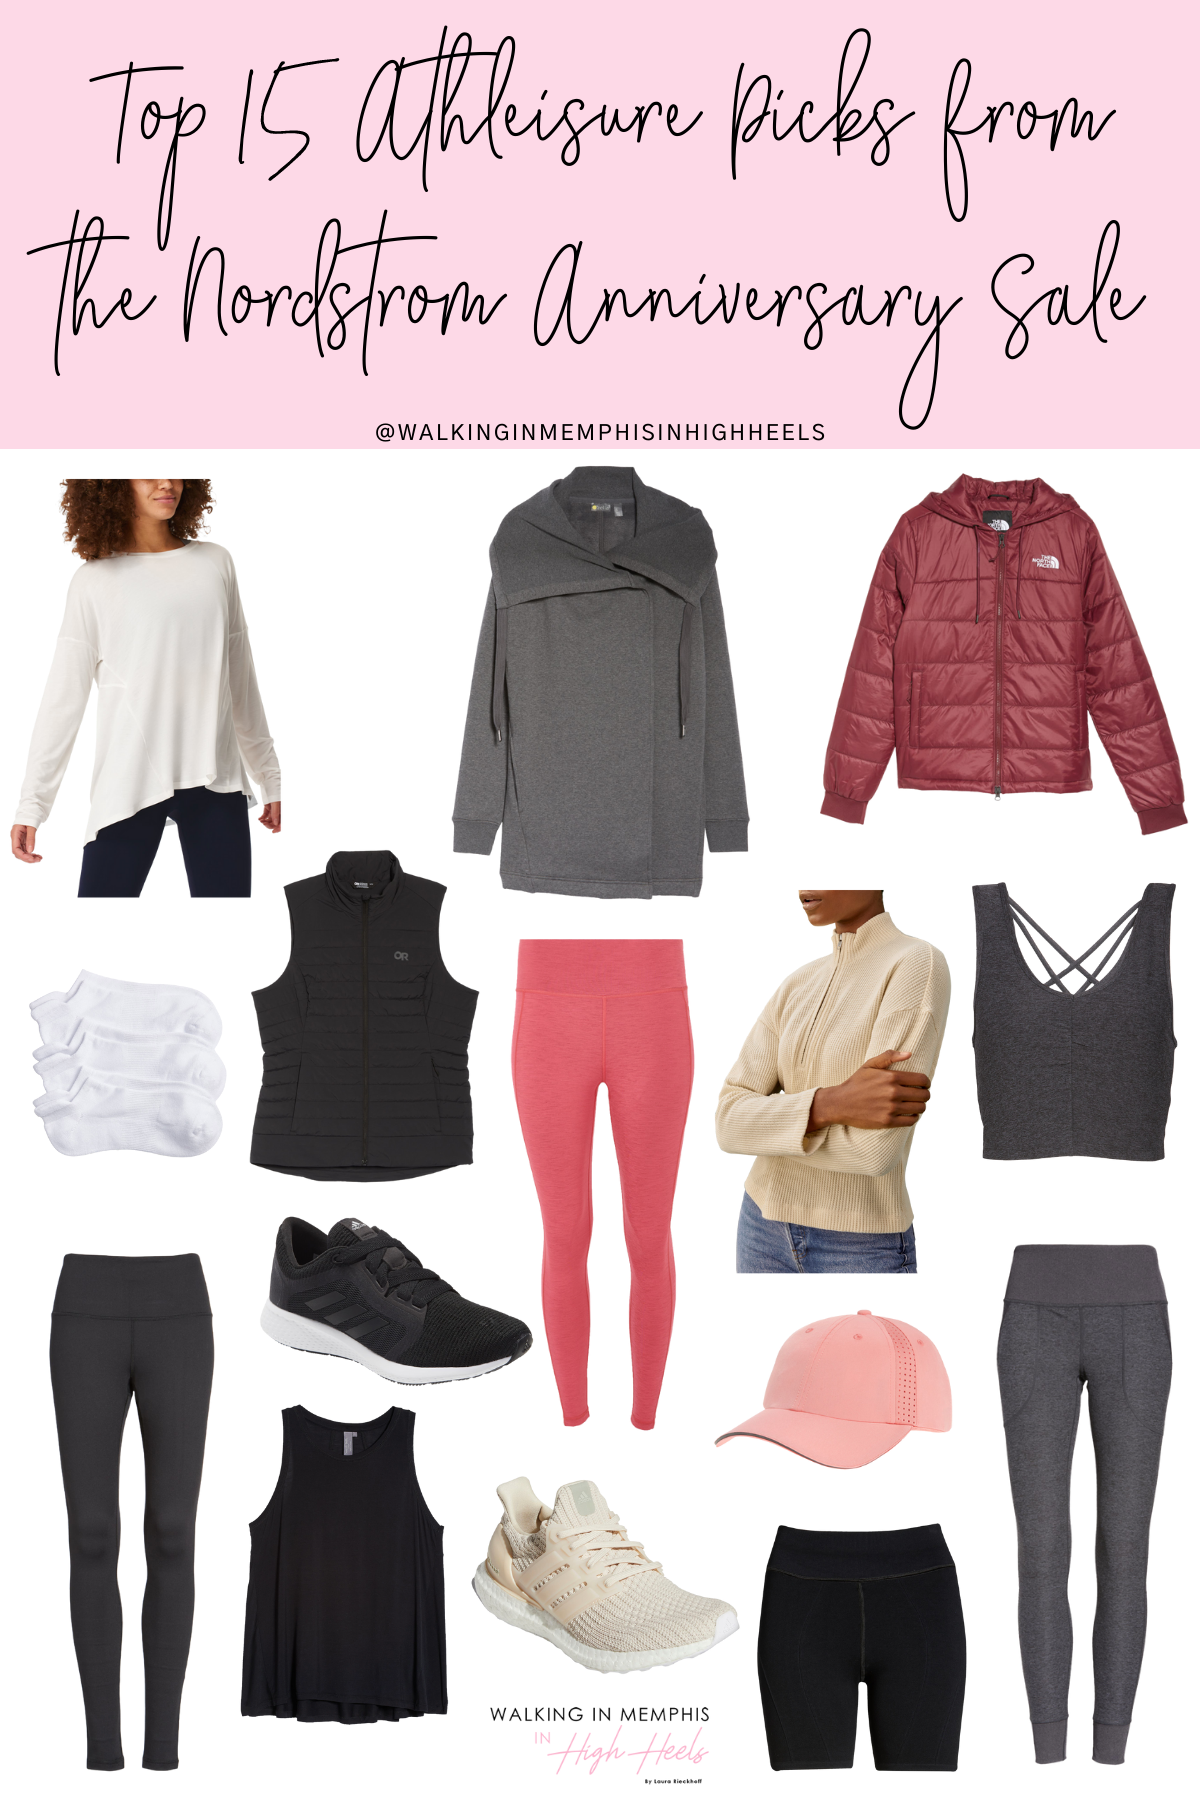 Nordstrom Anniversary Sale 2021: Top 15 Athleisure Picks for Women featured by top Memphis fashion blogger, Walking in Memphis in High Heels.